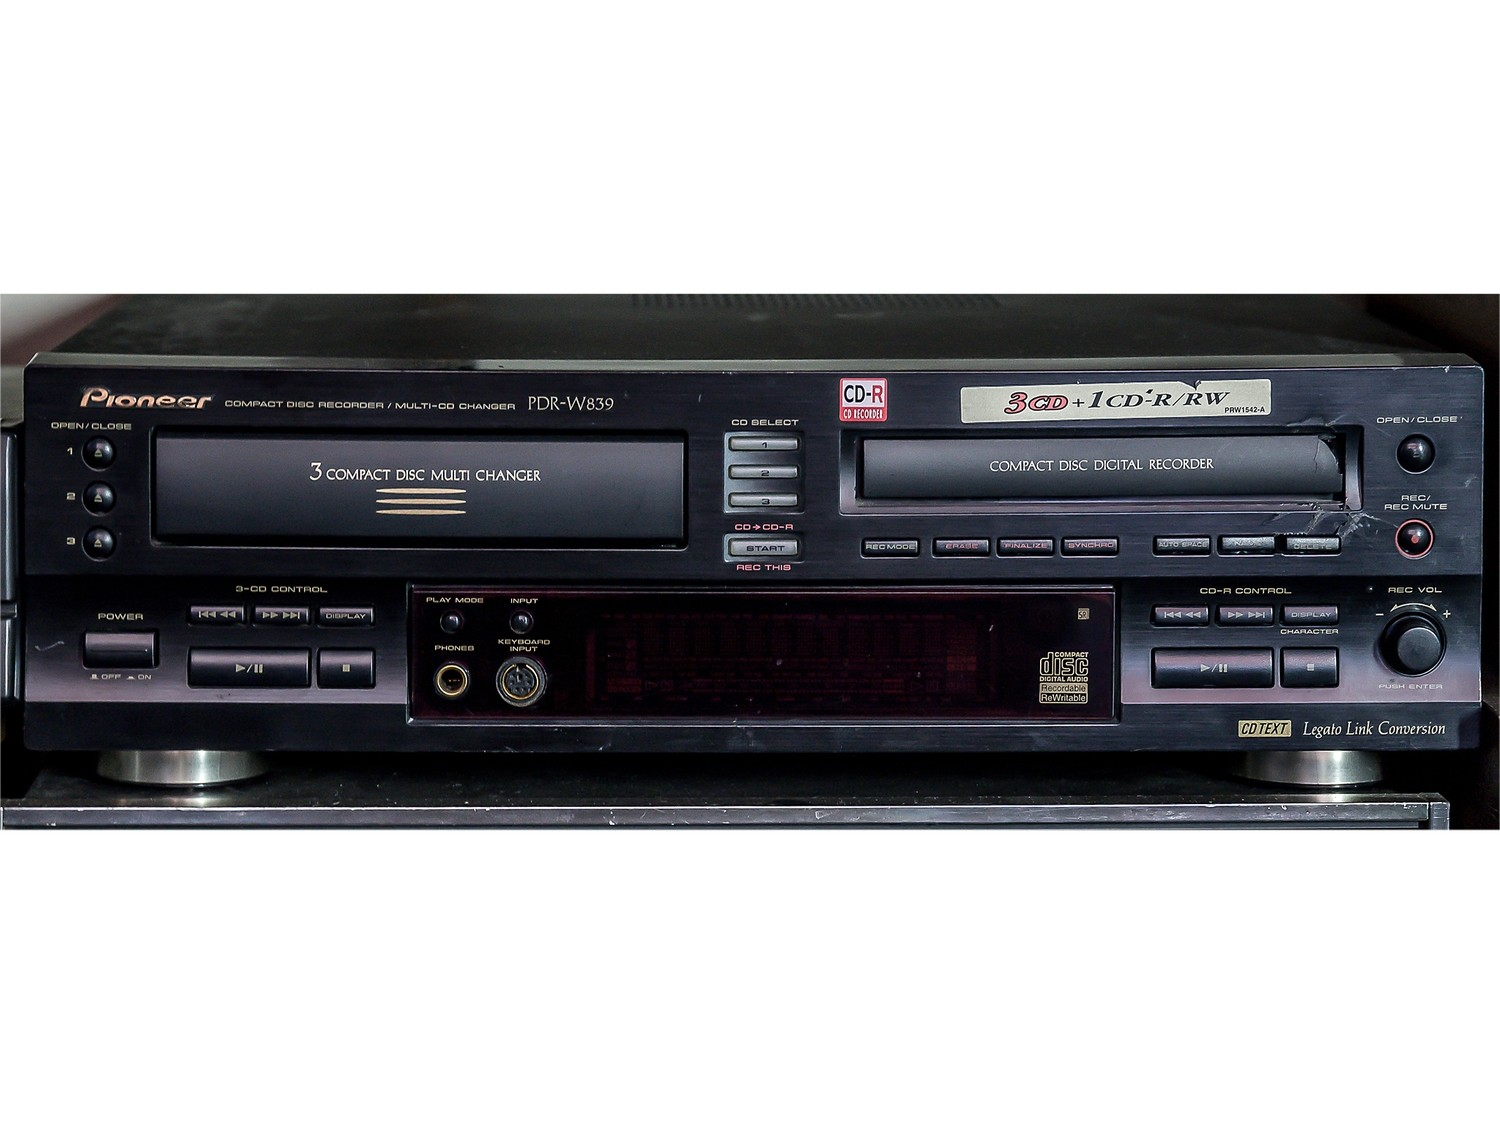 Lettore Cd Pioneer PDR-W839